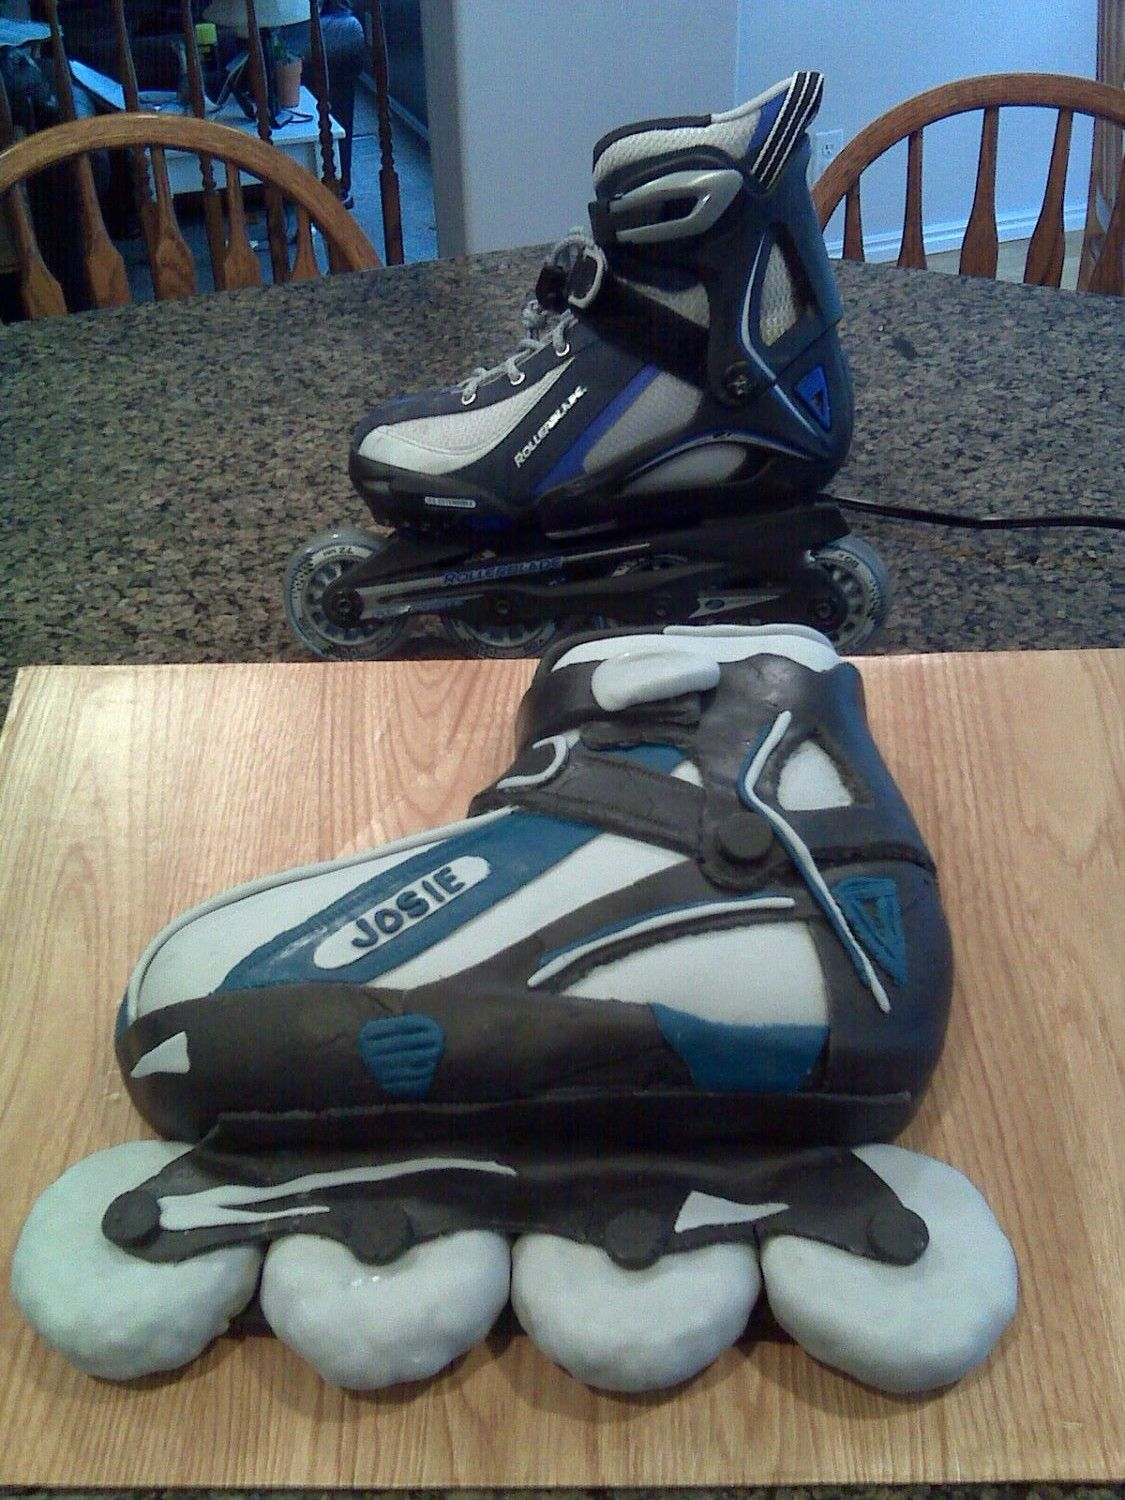 Roller skating rink westchester ny - Roller Blade Birthday Cake My Dd Picked A Rollerblade Cake To Go With Her Party